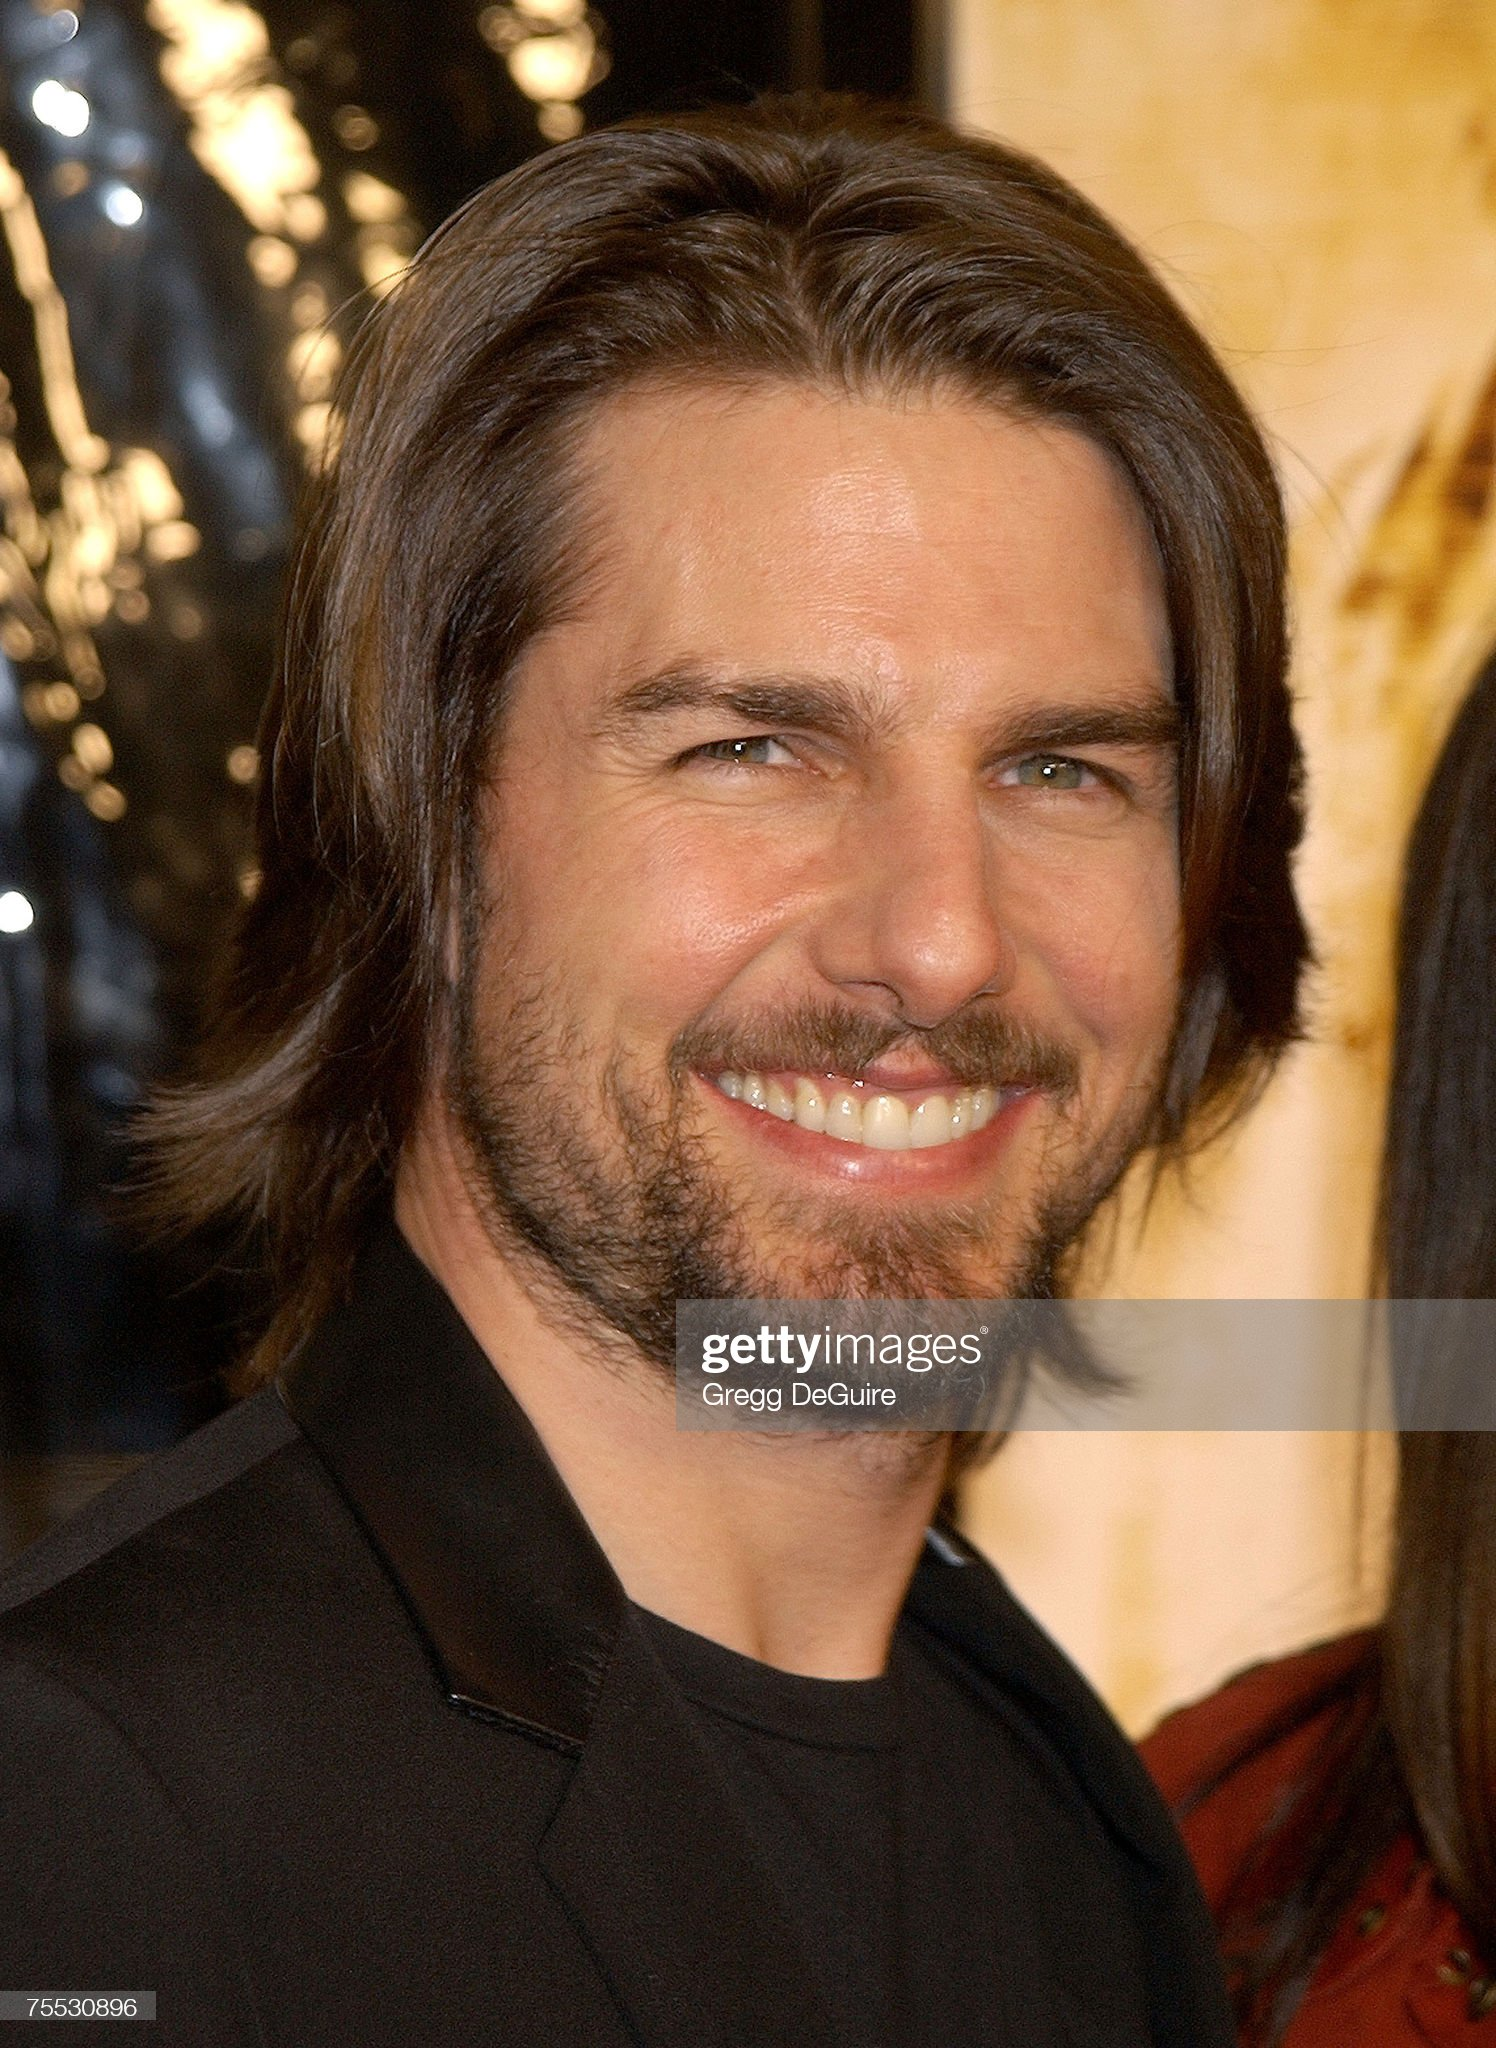 Tom Cruise (Galería de fotos) Executive-producer-tom-cruise-at-the-academy-of-motion-picture-arts-picture-id75530896?s=2048x2048